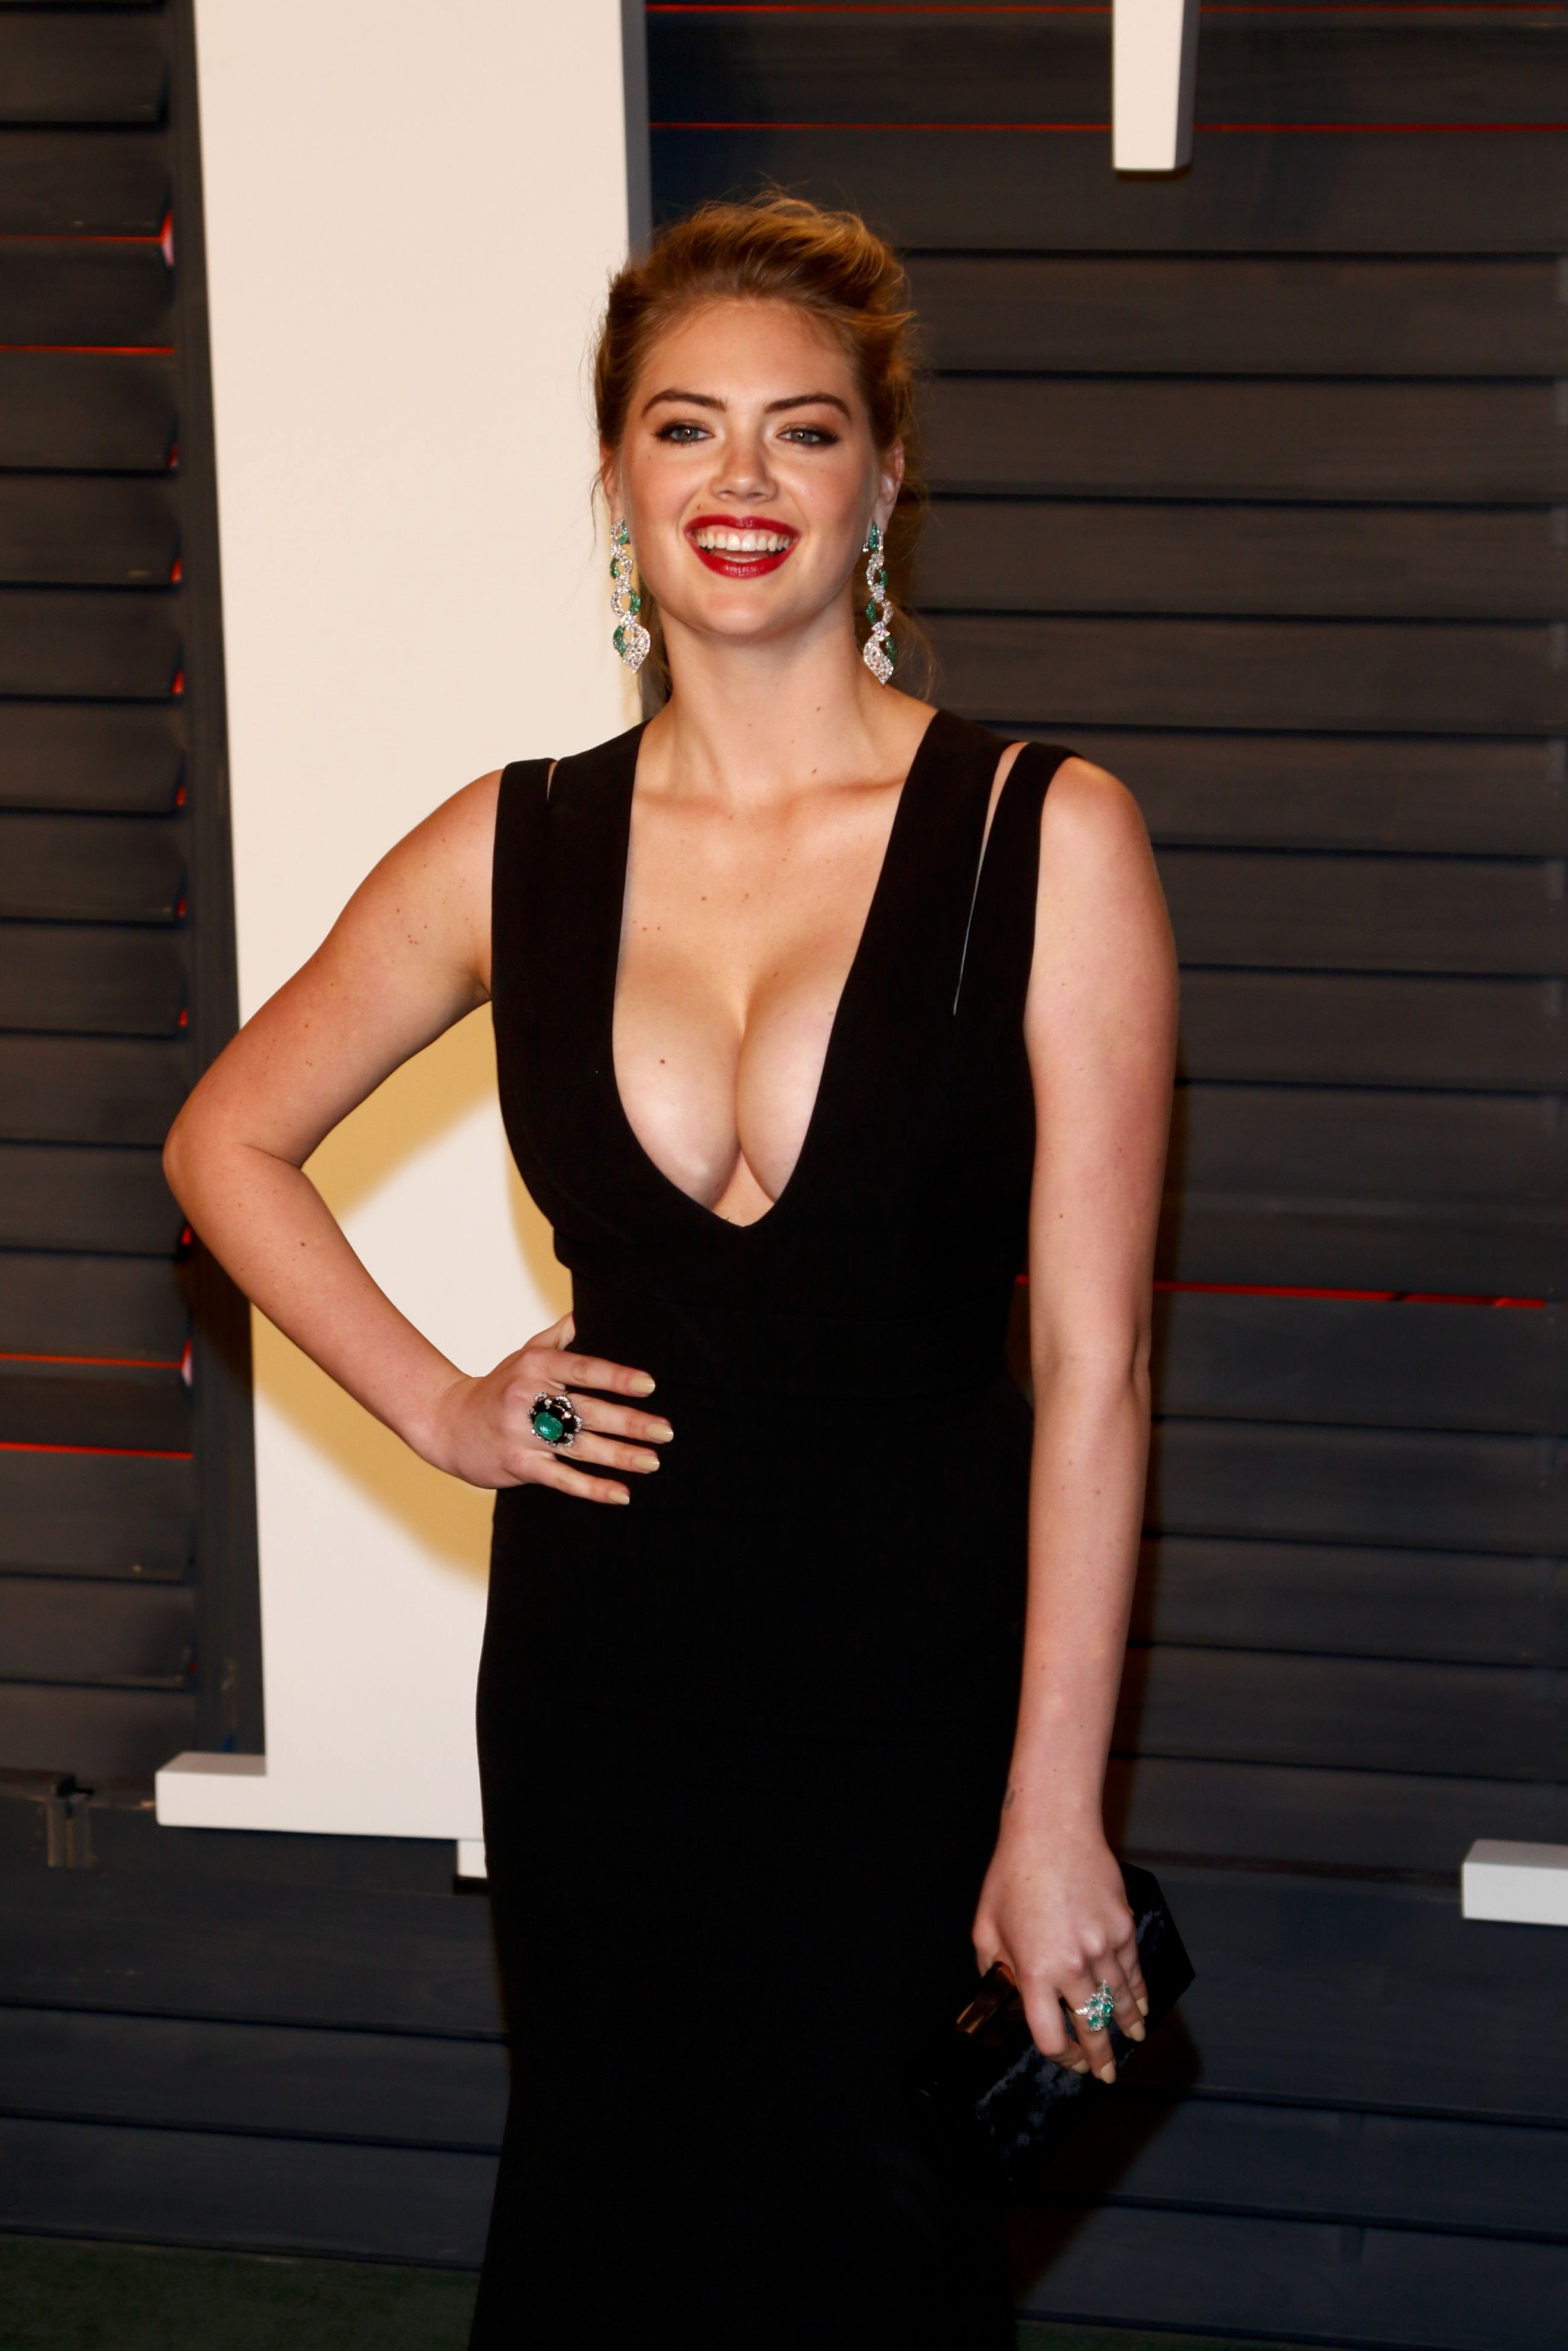 Kate Upton - Vanity Fair Oscar 2016 Party in Beverly Hills, CA